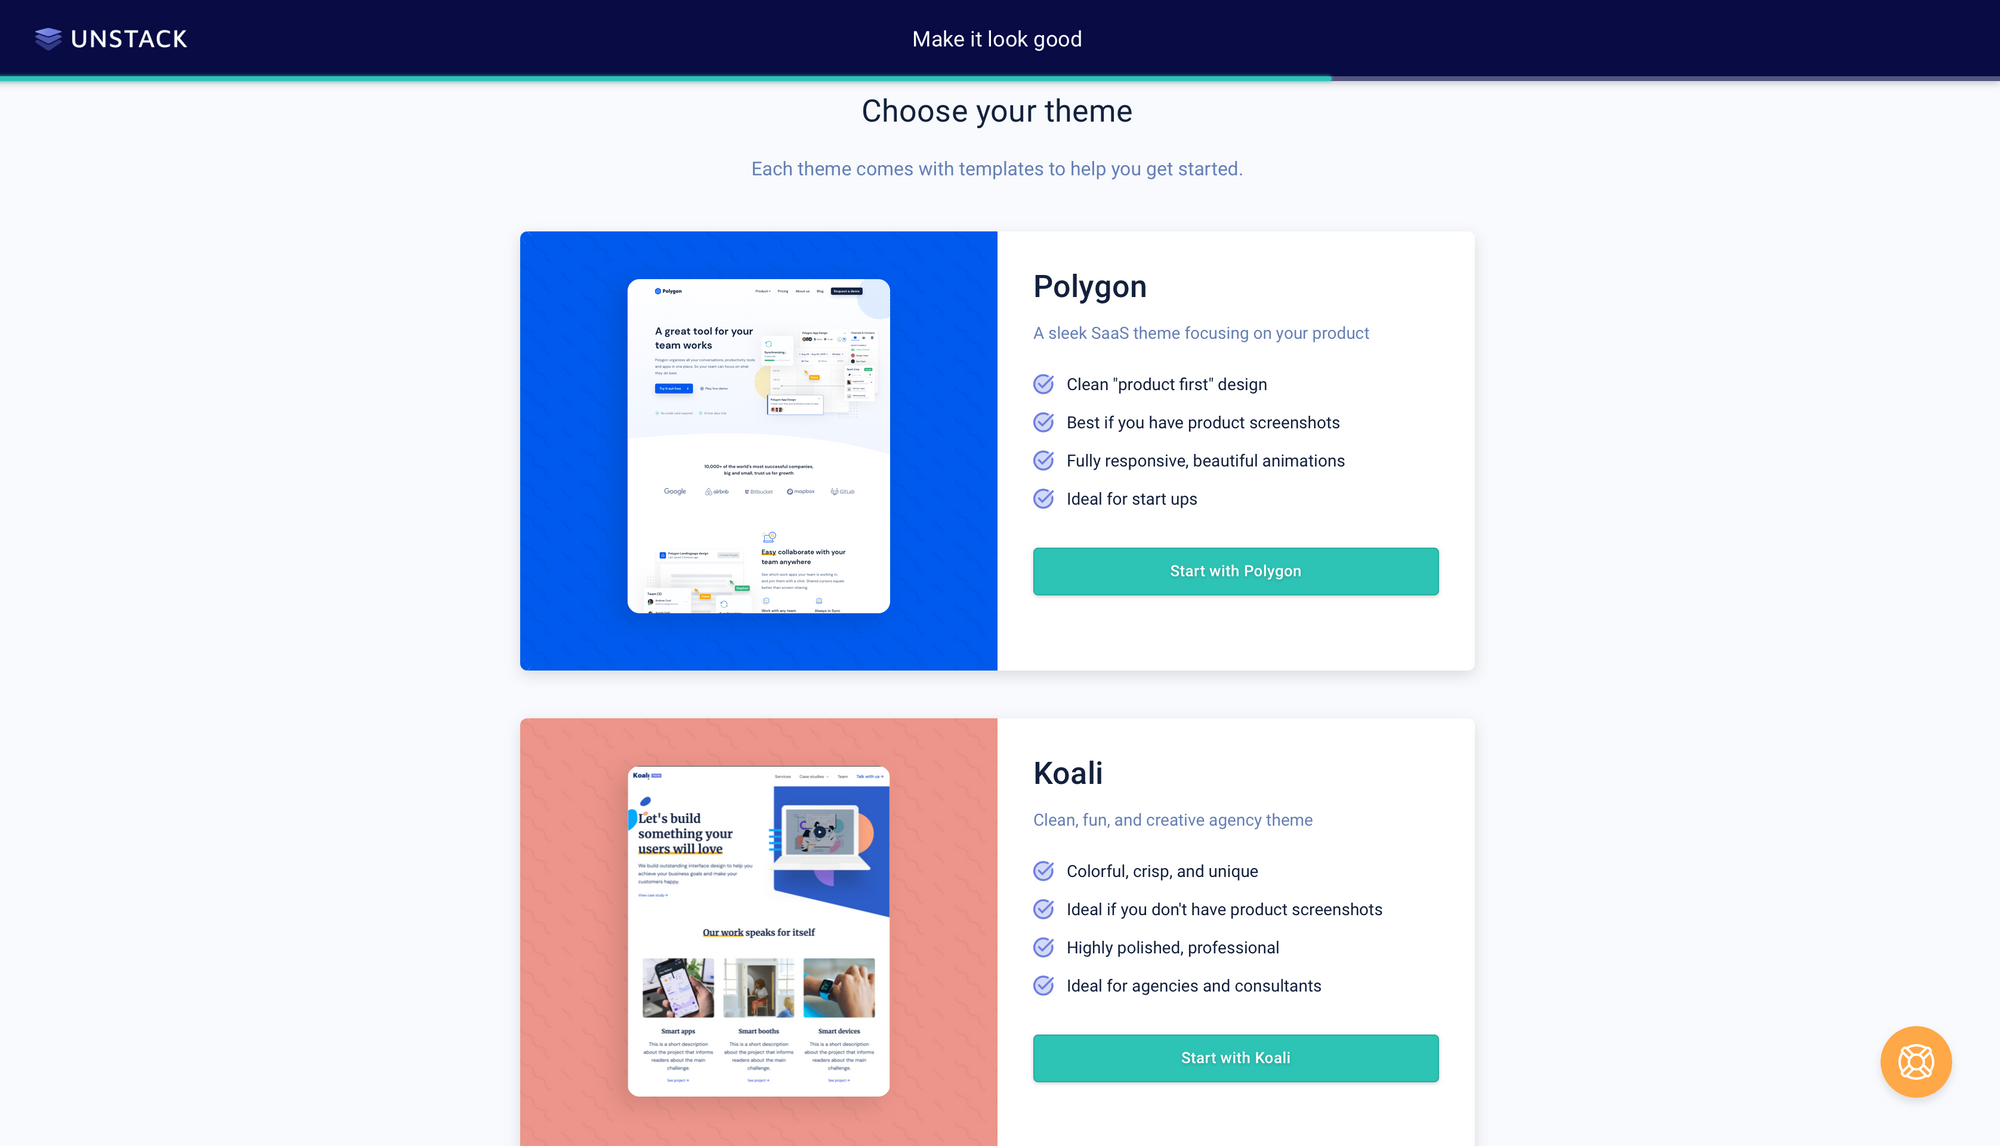 Unstack offers themes that fit your business needs.